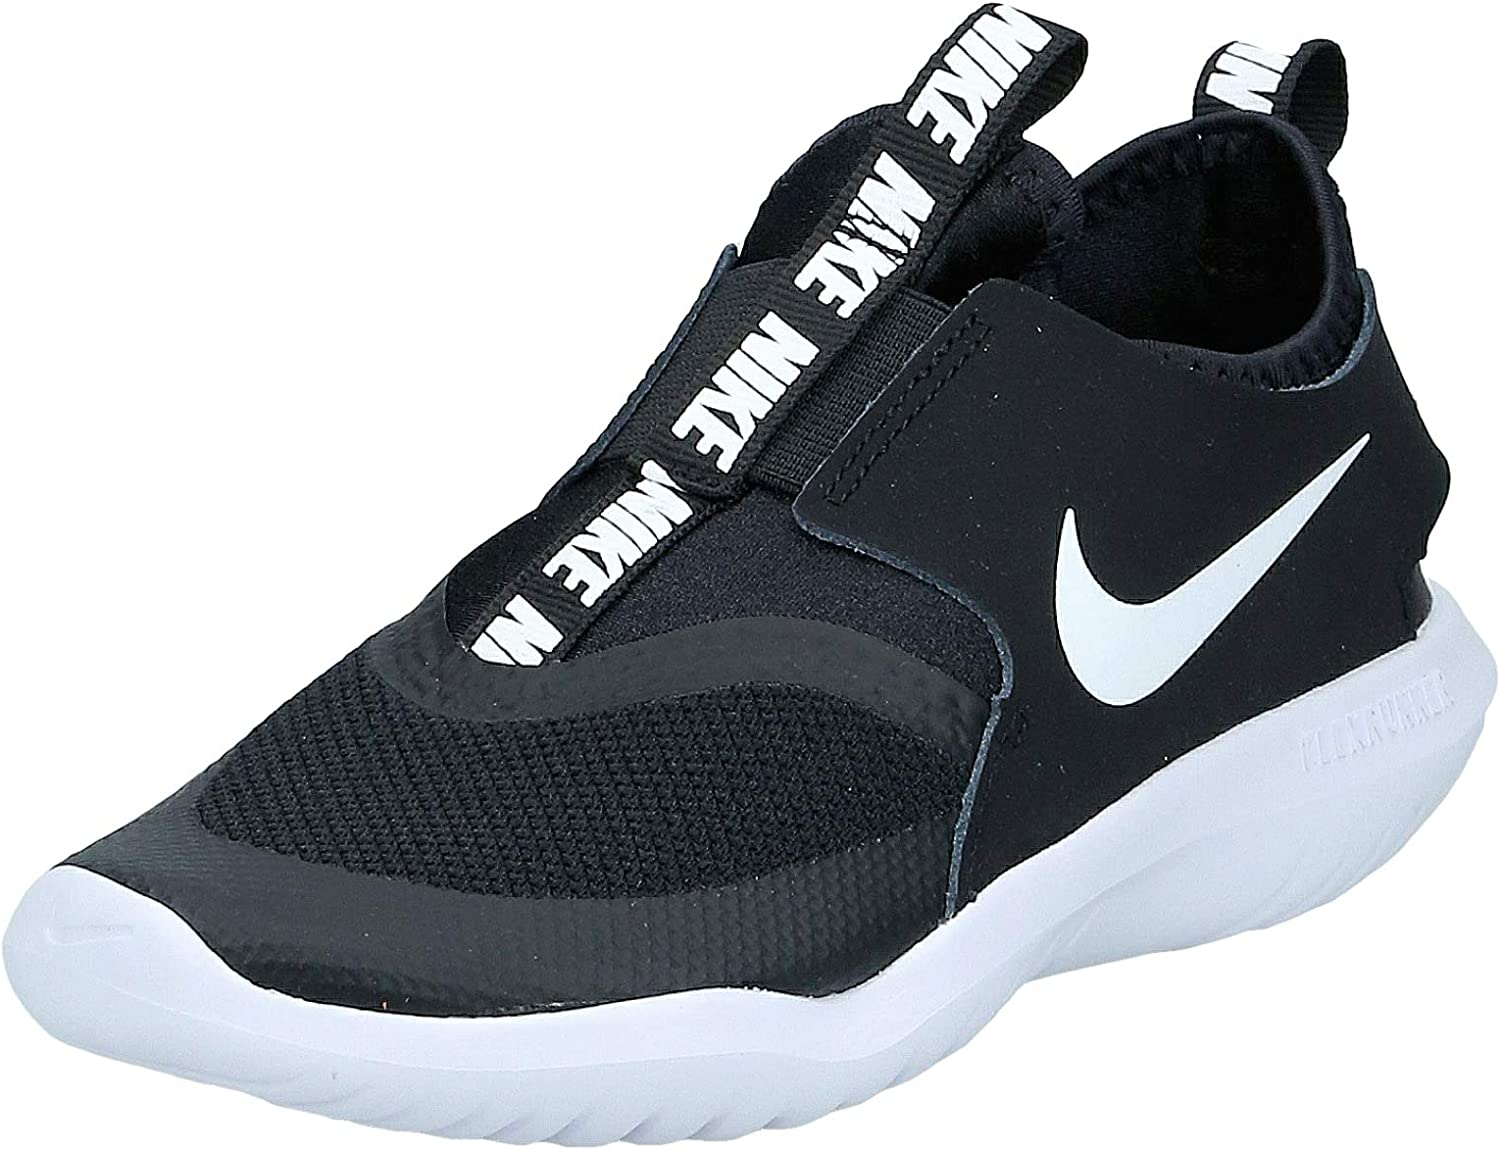 | Nike Kids Flex Runner (Little Kid) | Running